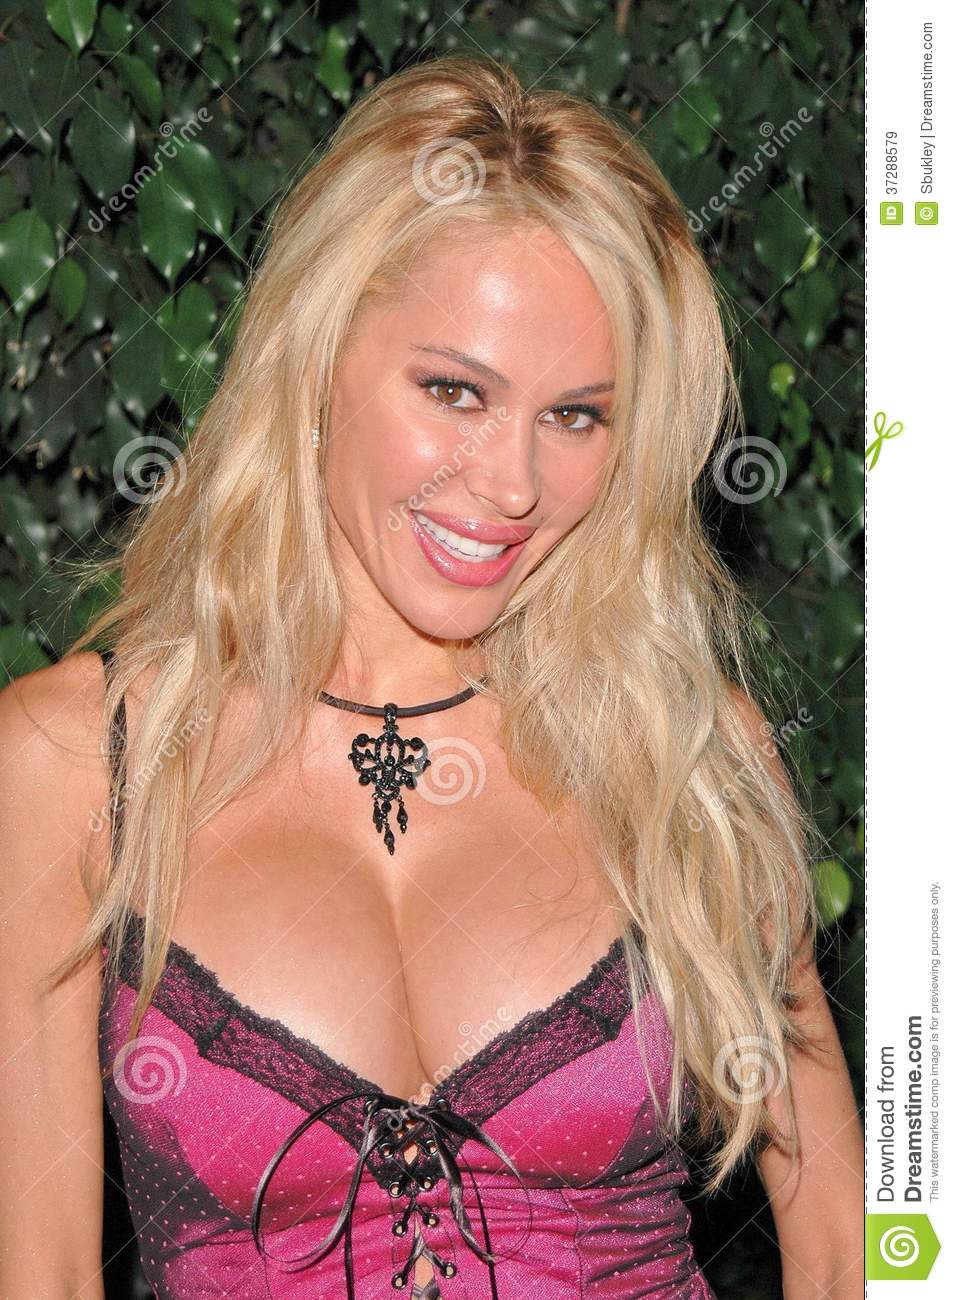 Tabitha taylor editorial stock image image of celebrity 37288579 download tabitha taylor editorial stock image image of celebrity 37288579 thecheapjerseys Images